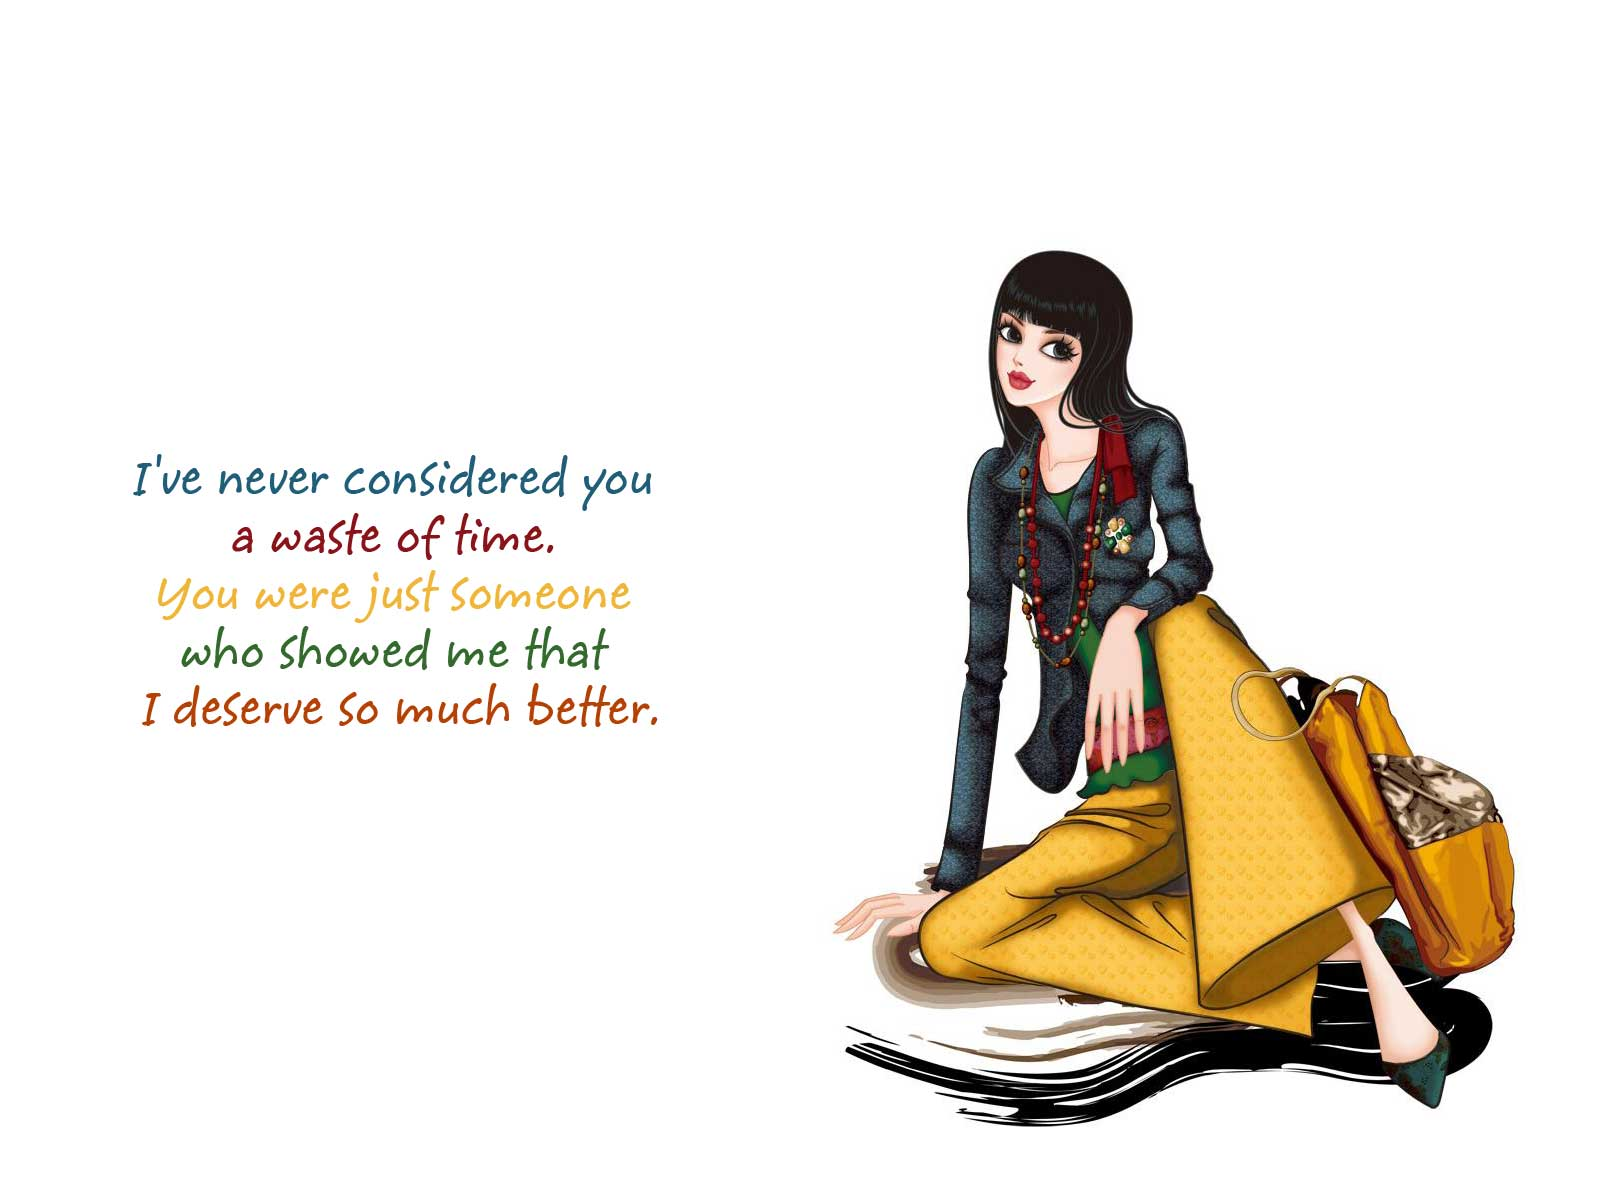 Sad Anime Quotes Wallpaper For Computers Love Quotes Wallpapers Wallpaper High Definition High